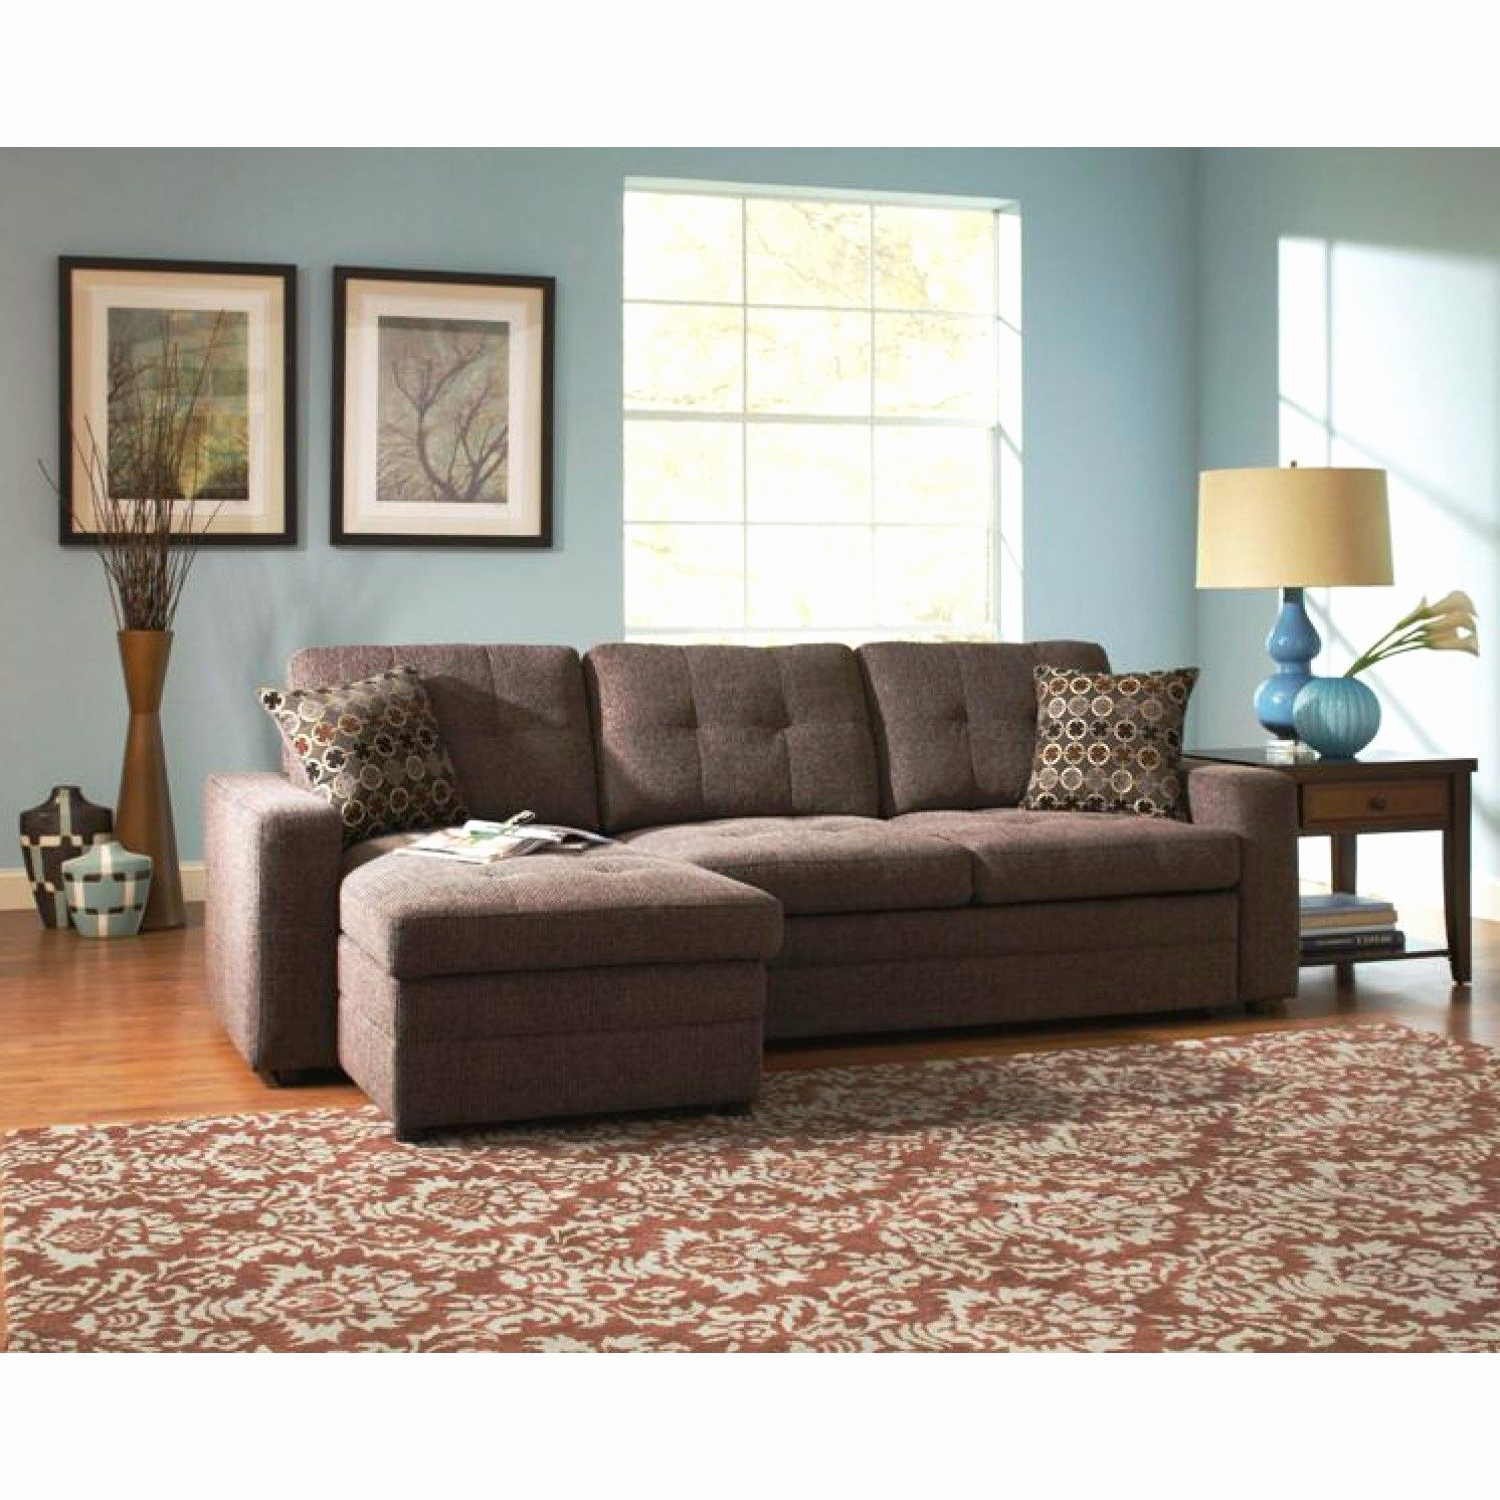 Favorite Norfolk Chocolate 3 Piece Sectionals With Laf Chaise Inside Best Of Sectional Sofa Sleepers Pictures Sectional Sofa Sleepers New (View 6 of 20)